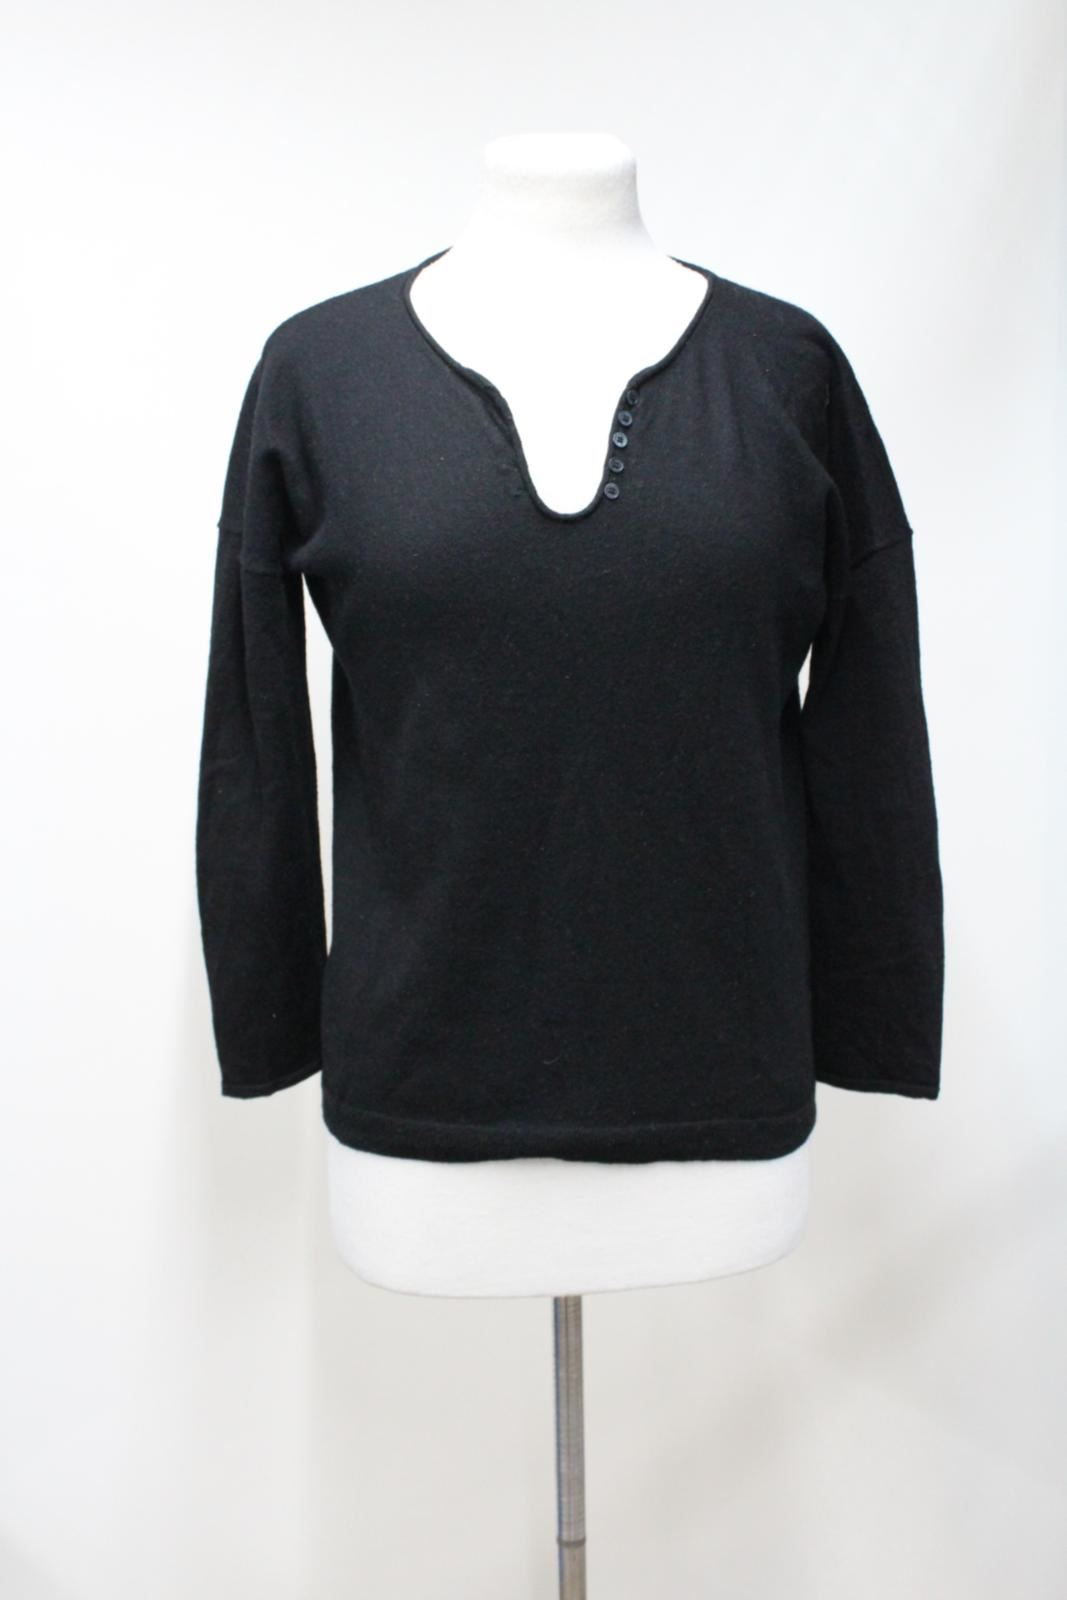 ZADIG-amp-VOLTAIRE-Black-Wool-Long-Sleeve-V-Neck-Sweater-Jumper-Size-Small